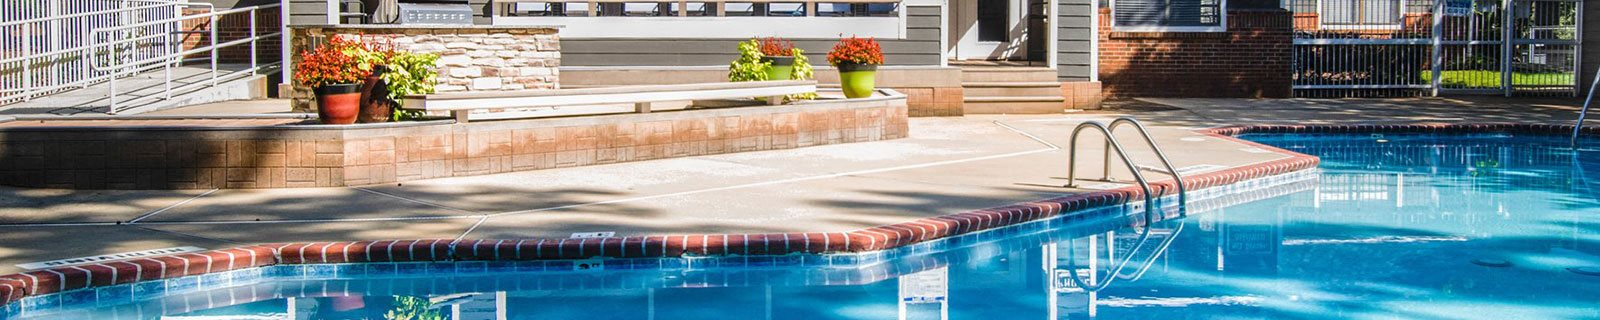 Amberwood-Amenity-Pool-1_bannerweb